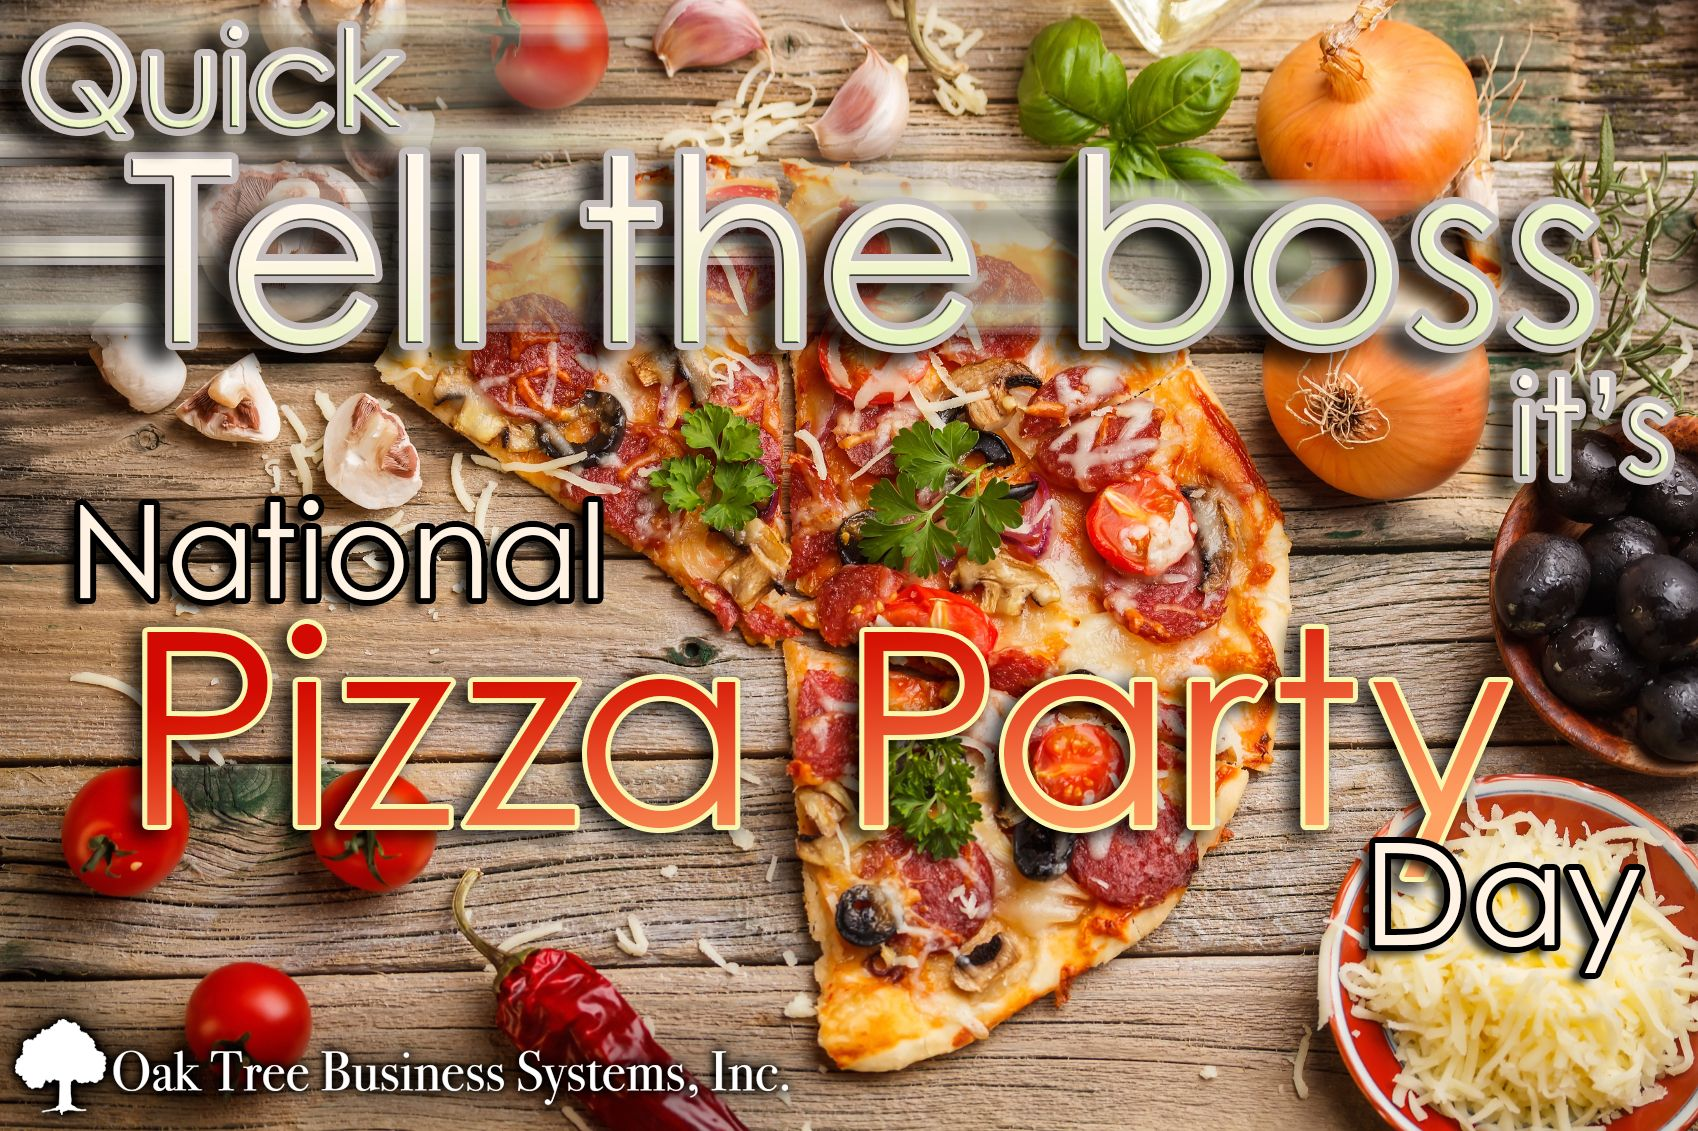 Who is having a #PizzaPartyDay? Share your love for pizza and ...